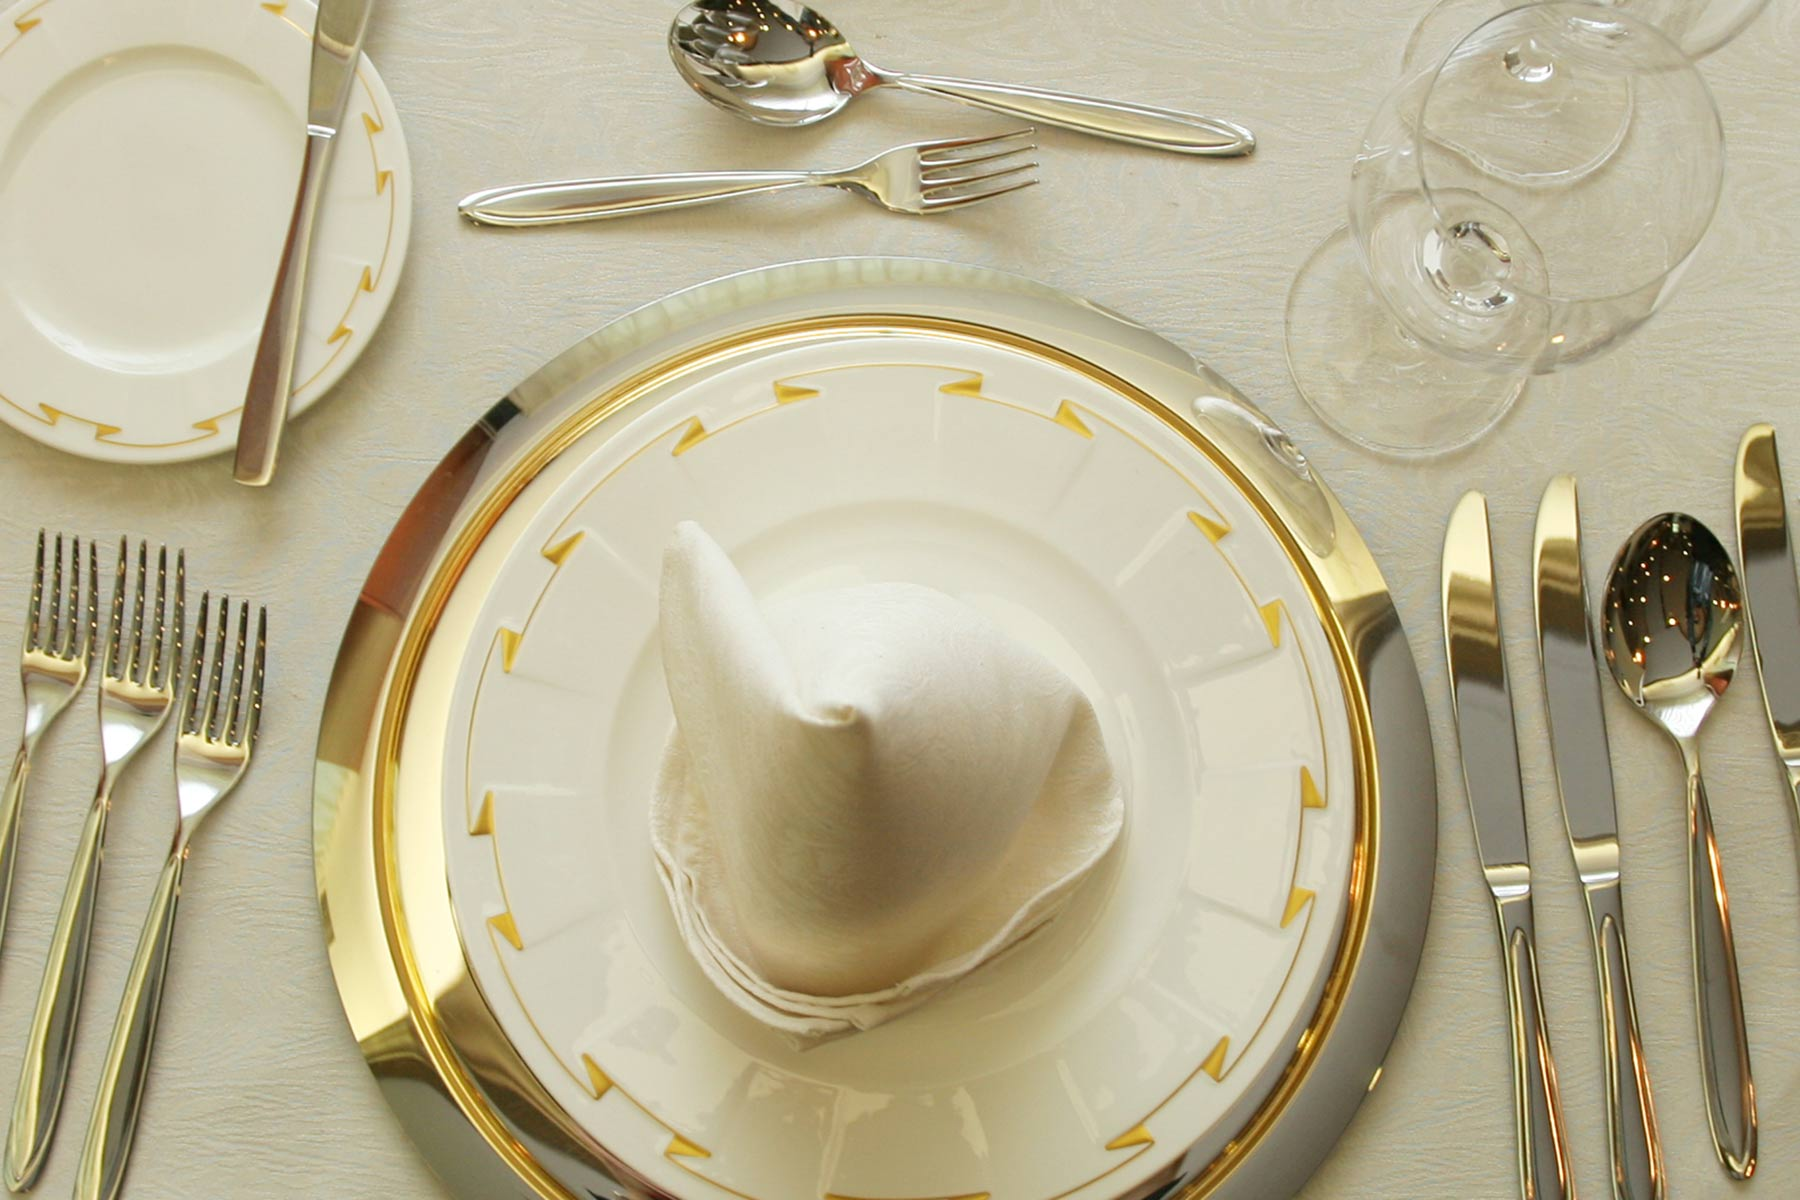 An elegant five star restaurant dinner service cutlery china crystal